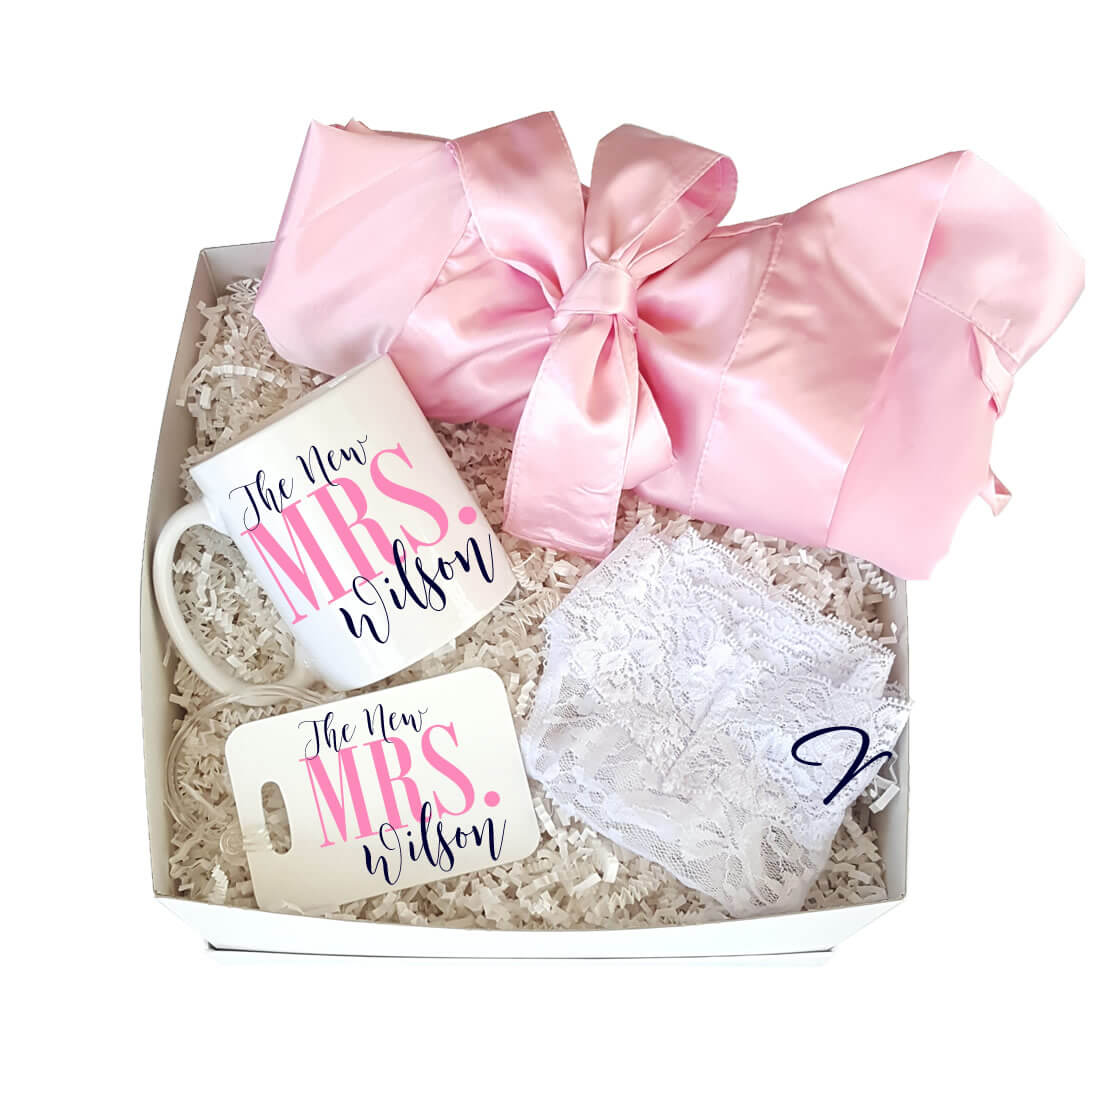 Honeymoon Gift Box 2 | Personalized Brides